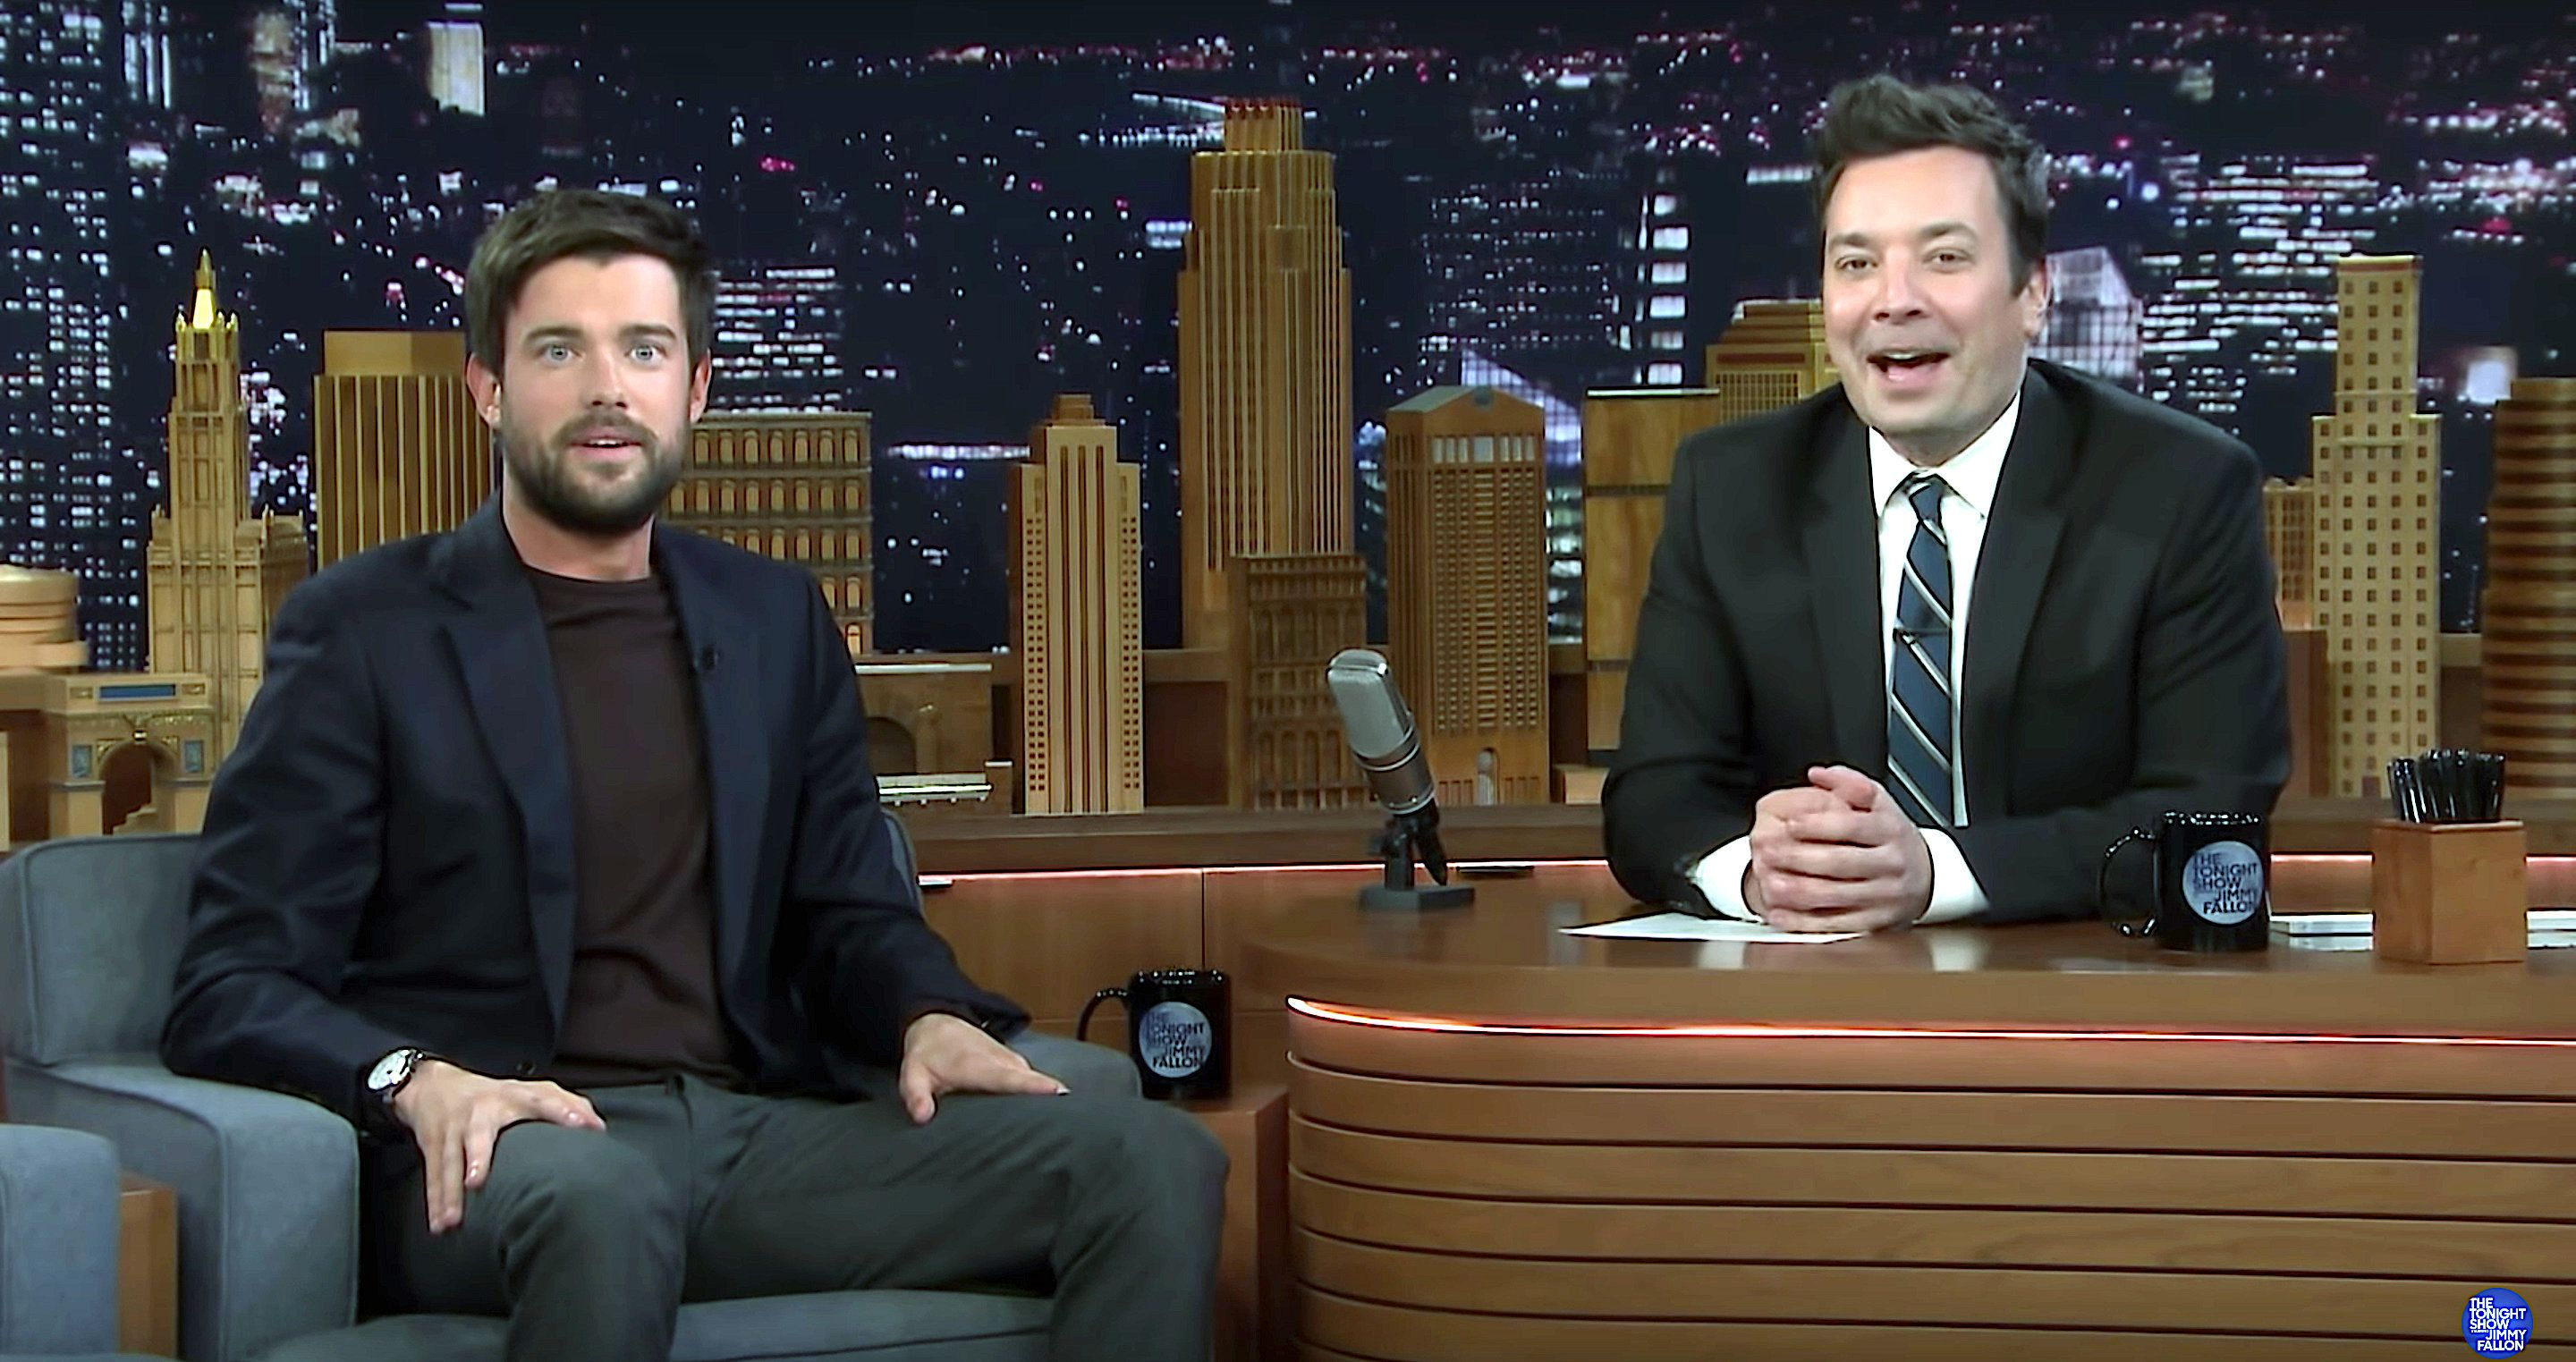 Jack Whitehall and Jimmy Fallon